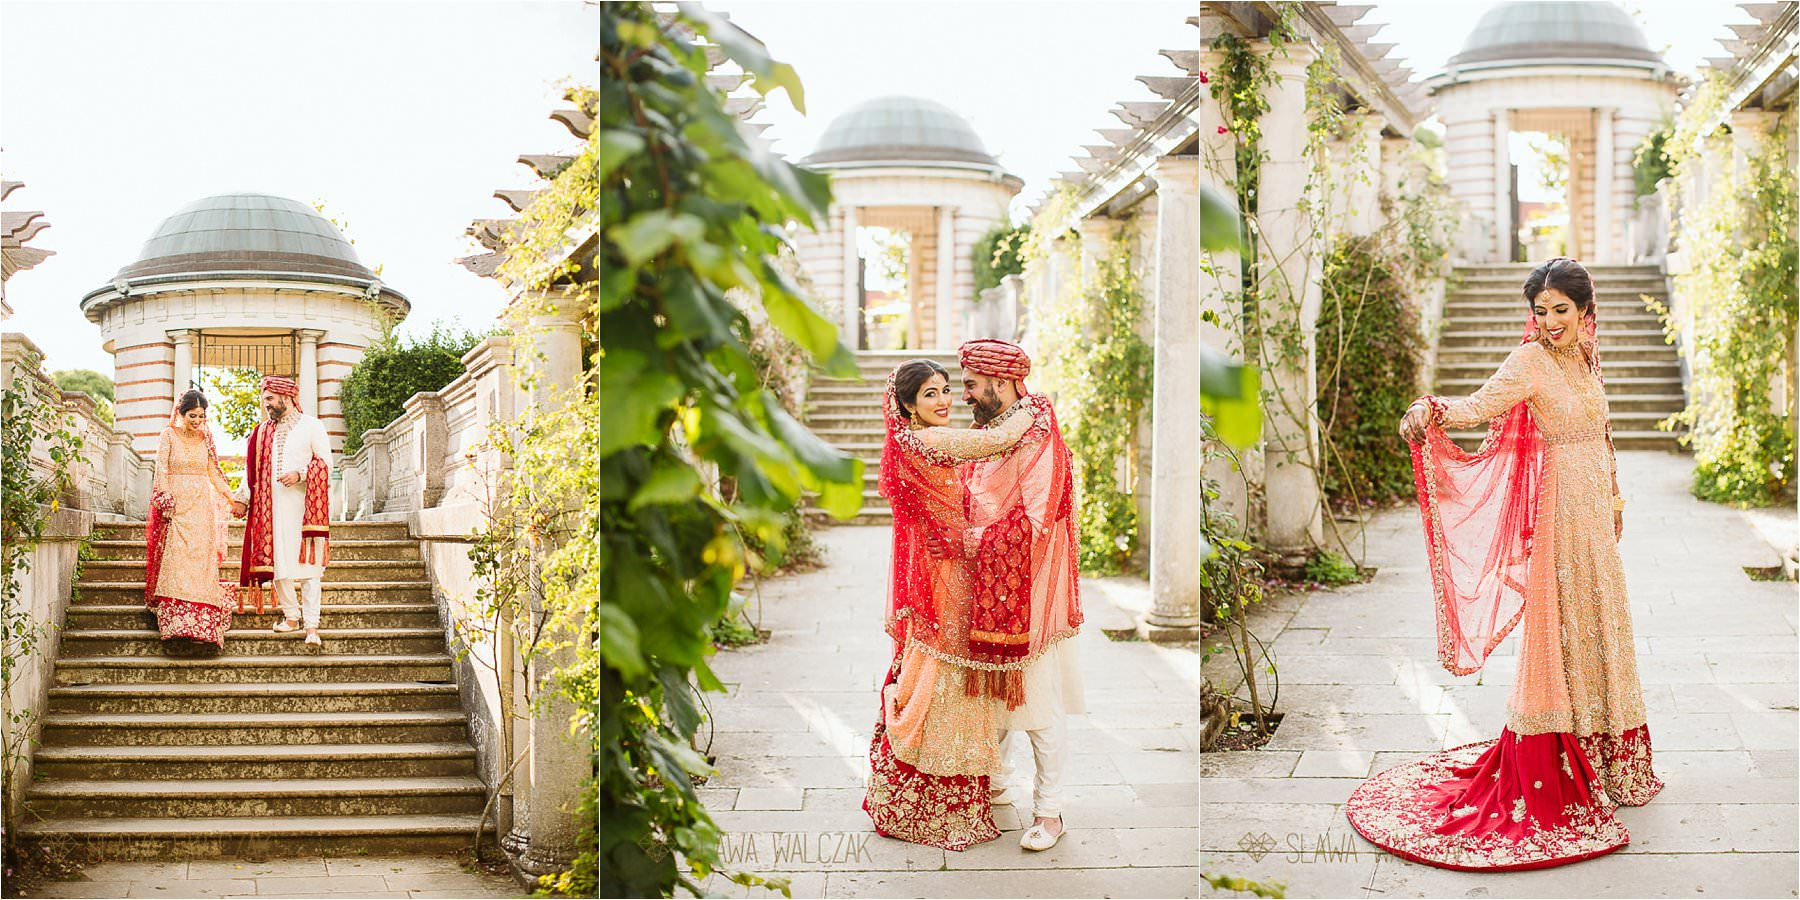 Hampstead Heath Pergola Wedding Photoshoot